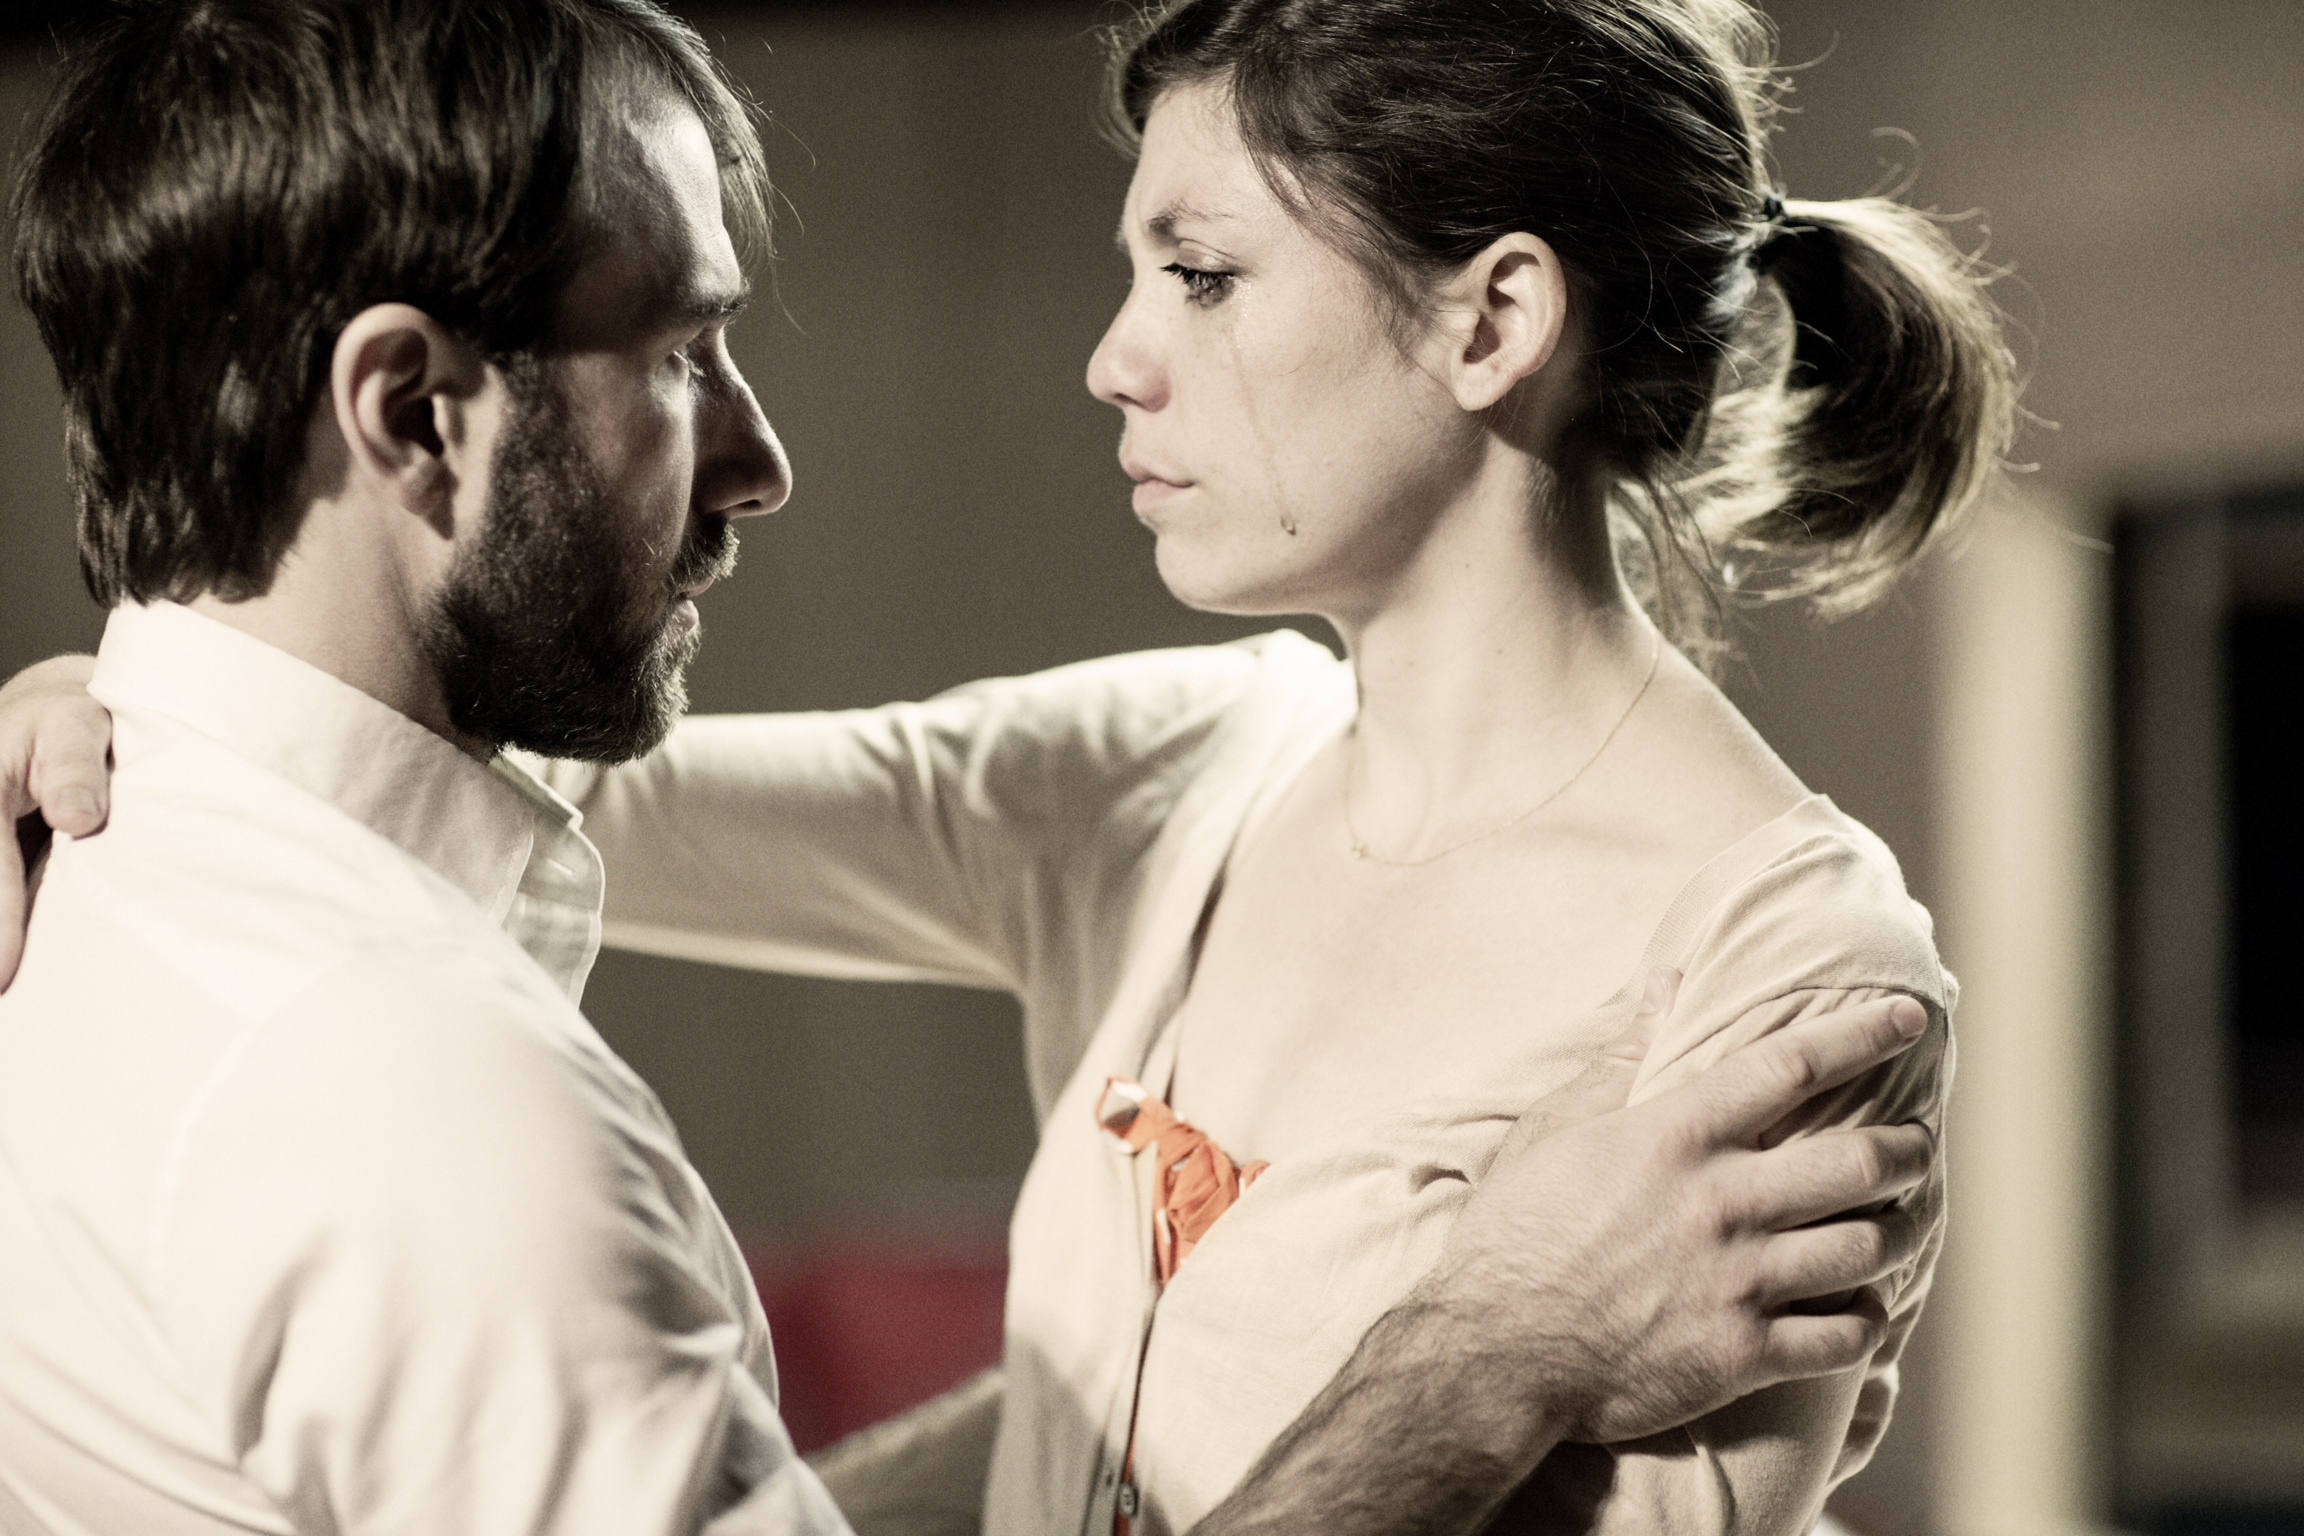 Alex Hurt (Johan 1) and Marianne 1 (Susannah Flood)